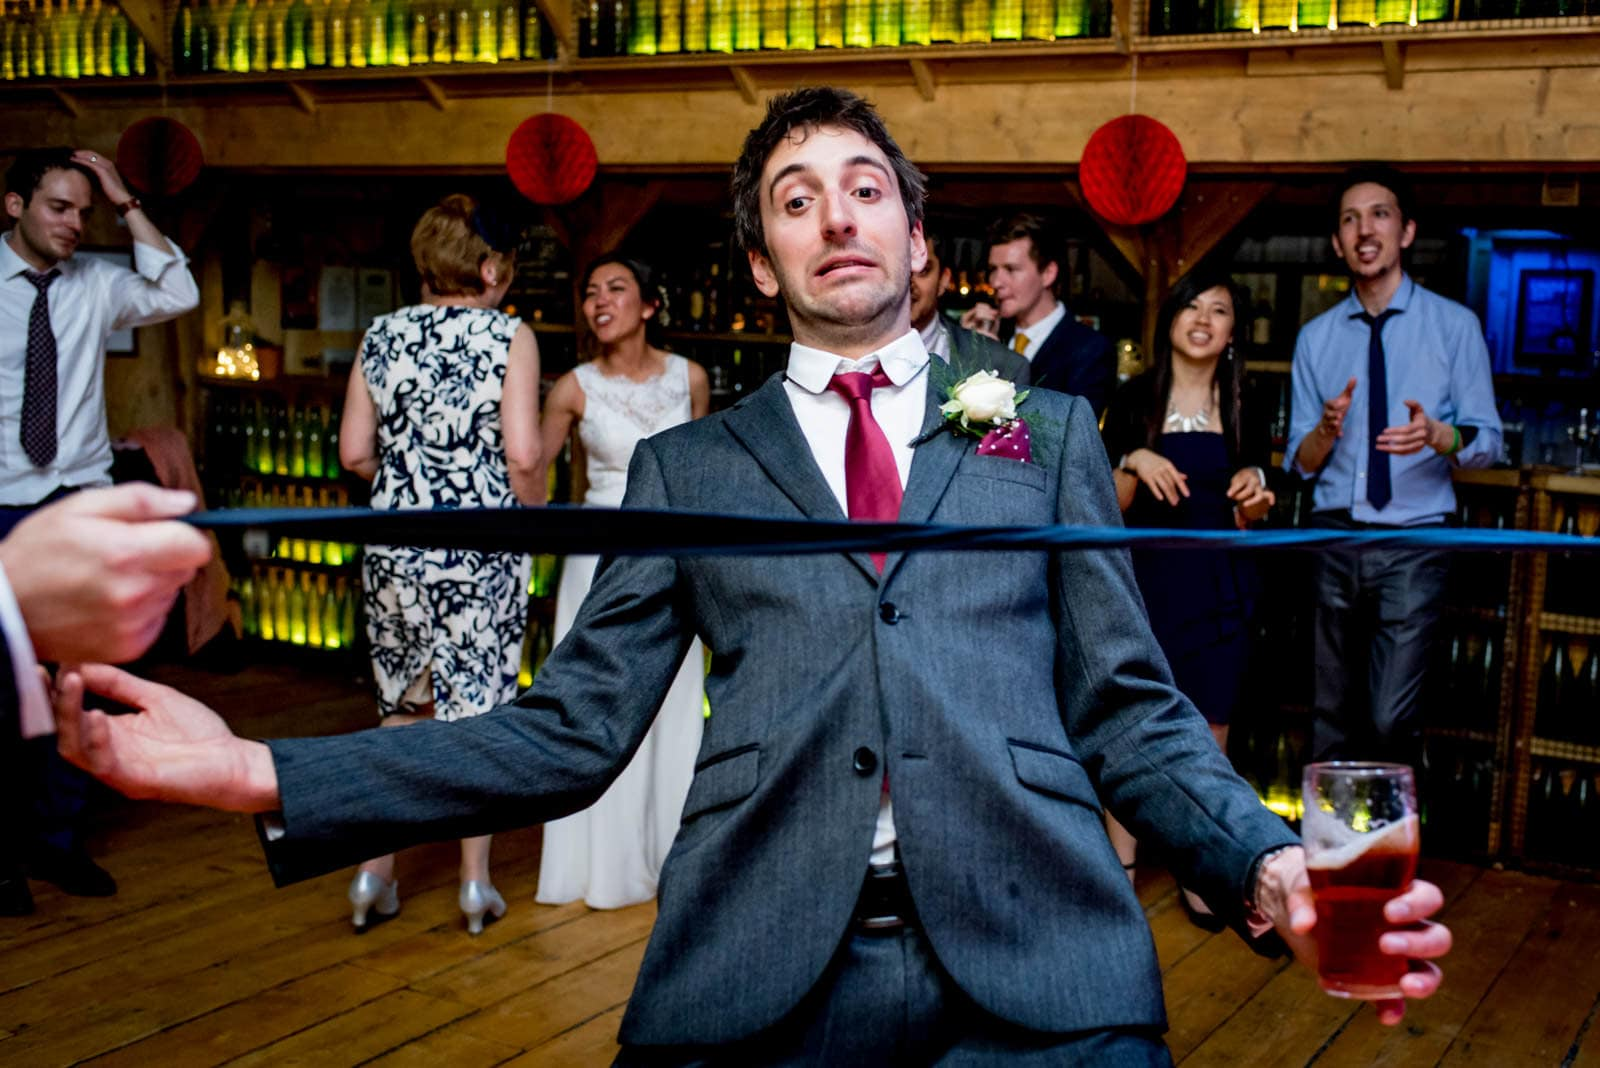 tie limbo on the dance floor at this wedding